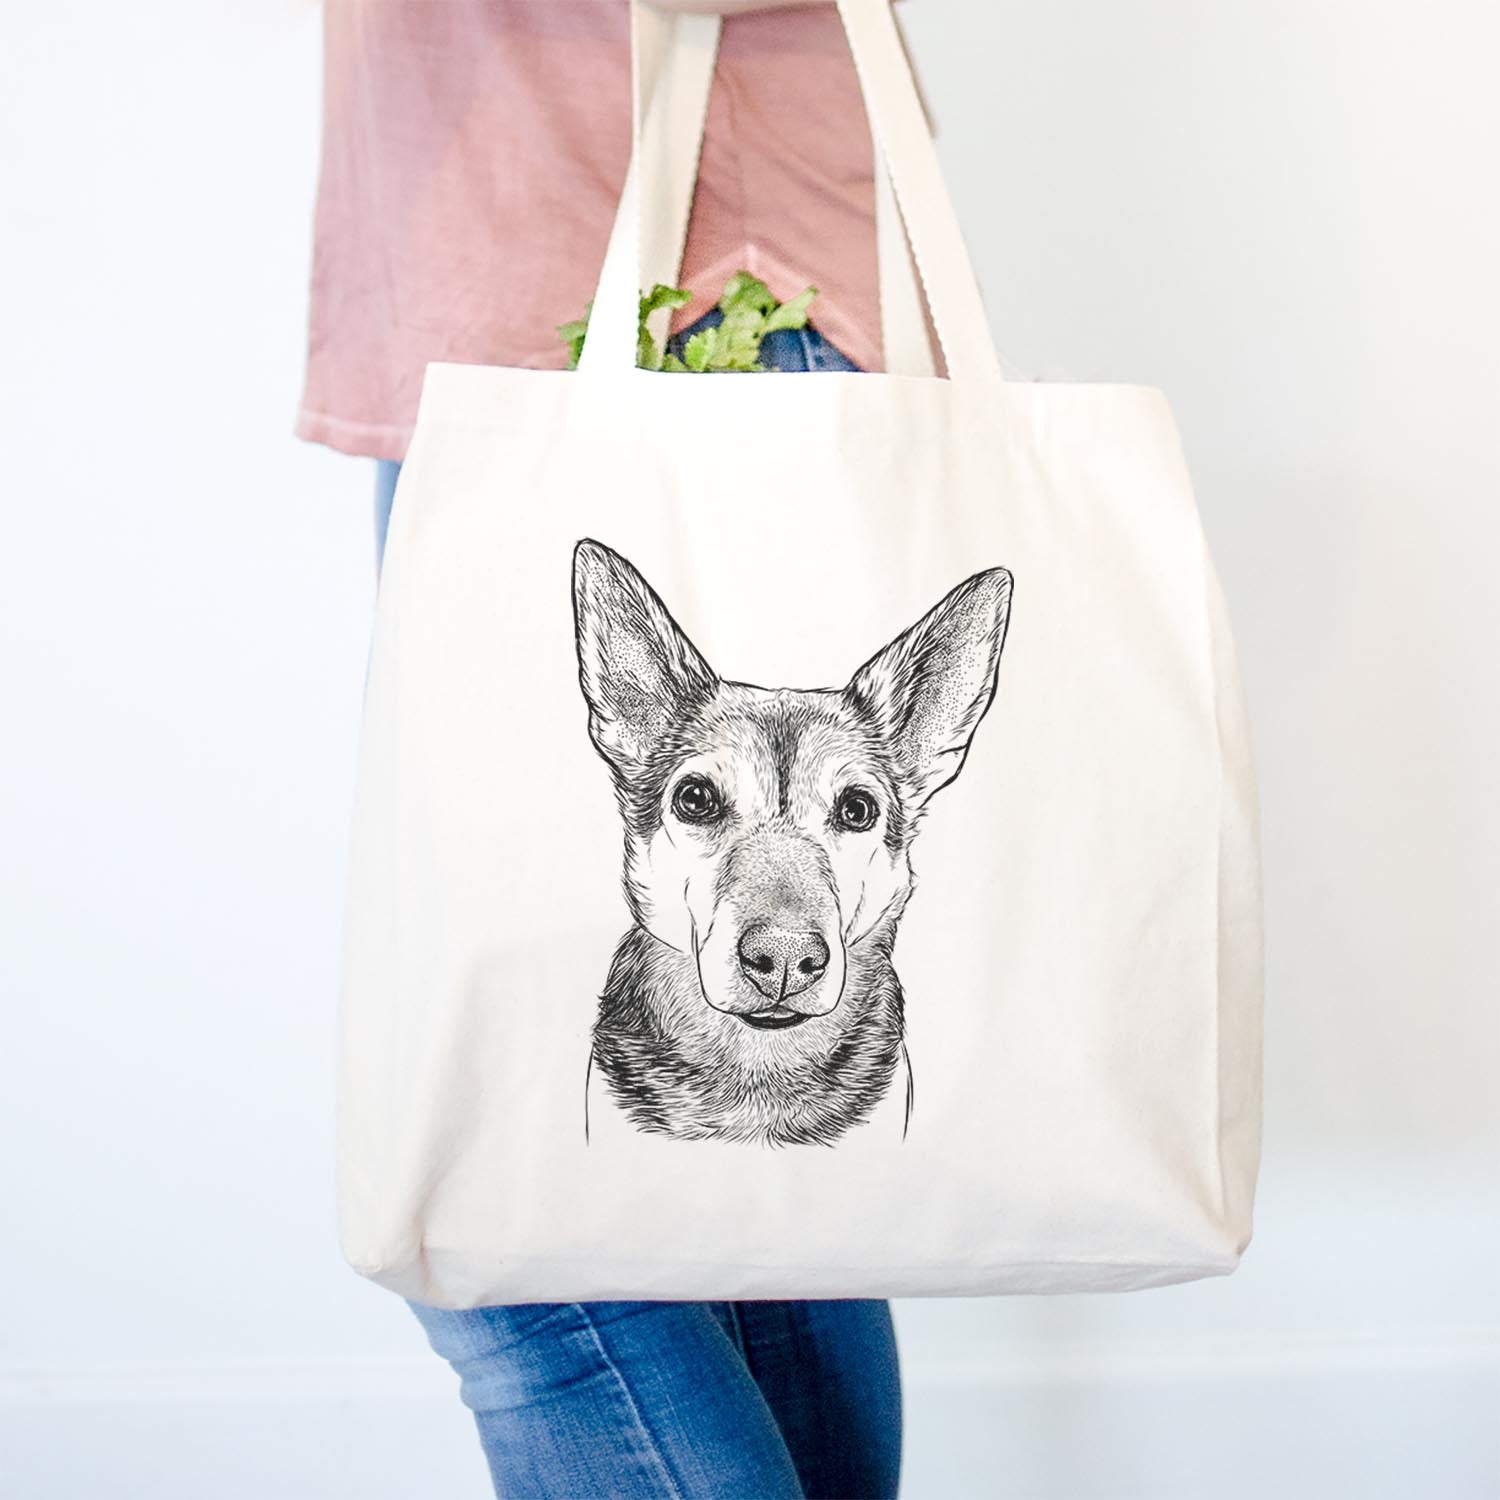 Sammie the Mixed Breed - Tote Bag